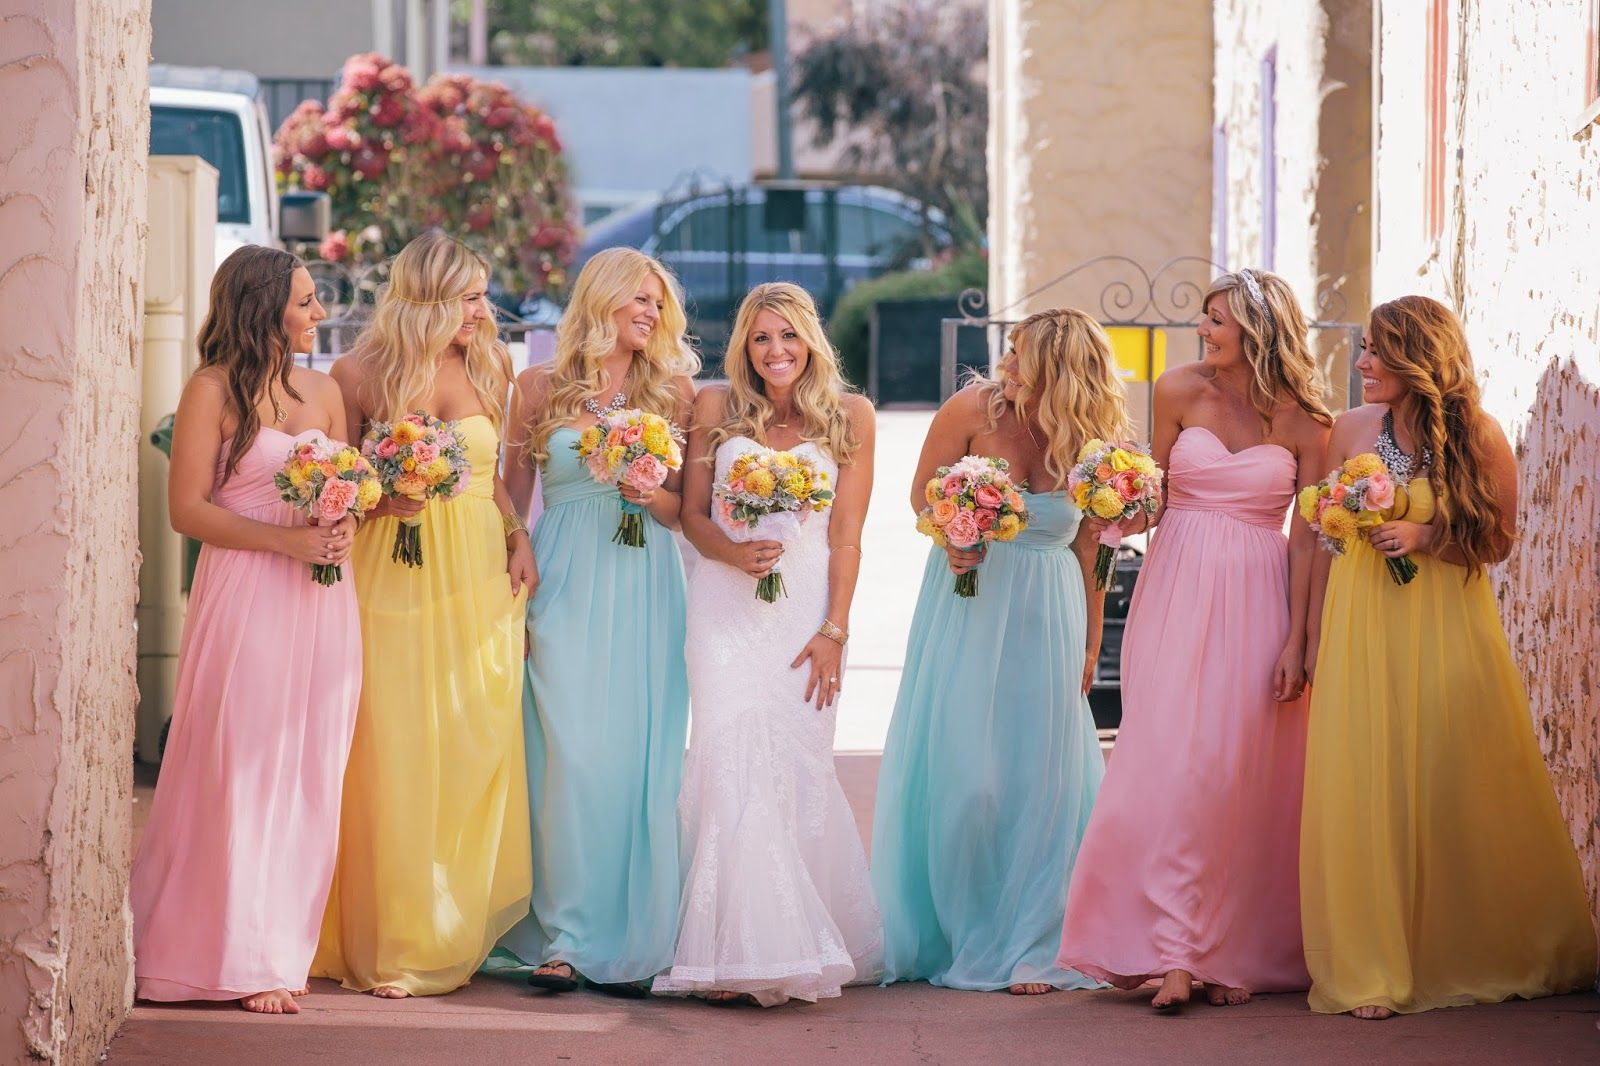 Rent your wedding dress  Bridesmaids dresses you can rent Order a free swatch at Little